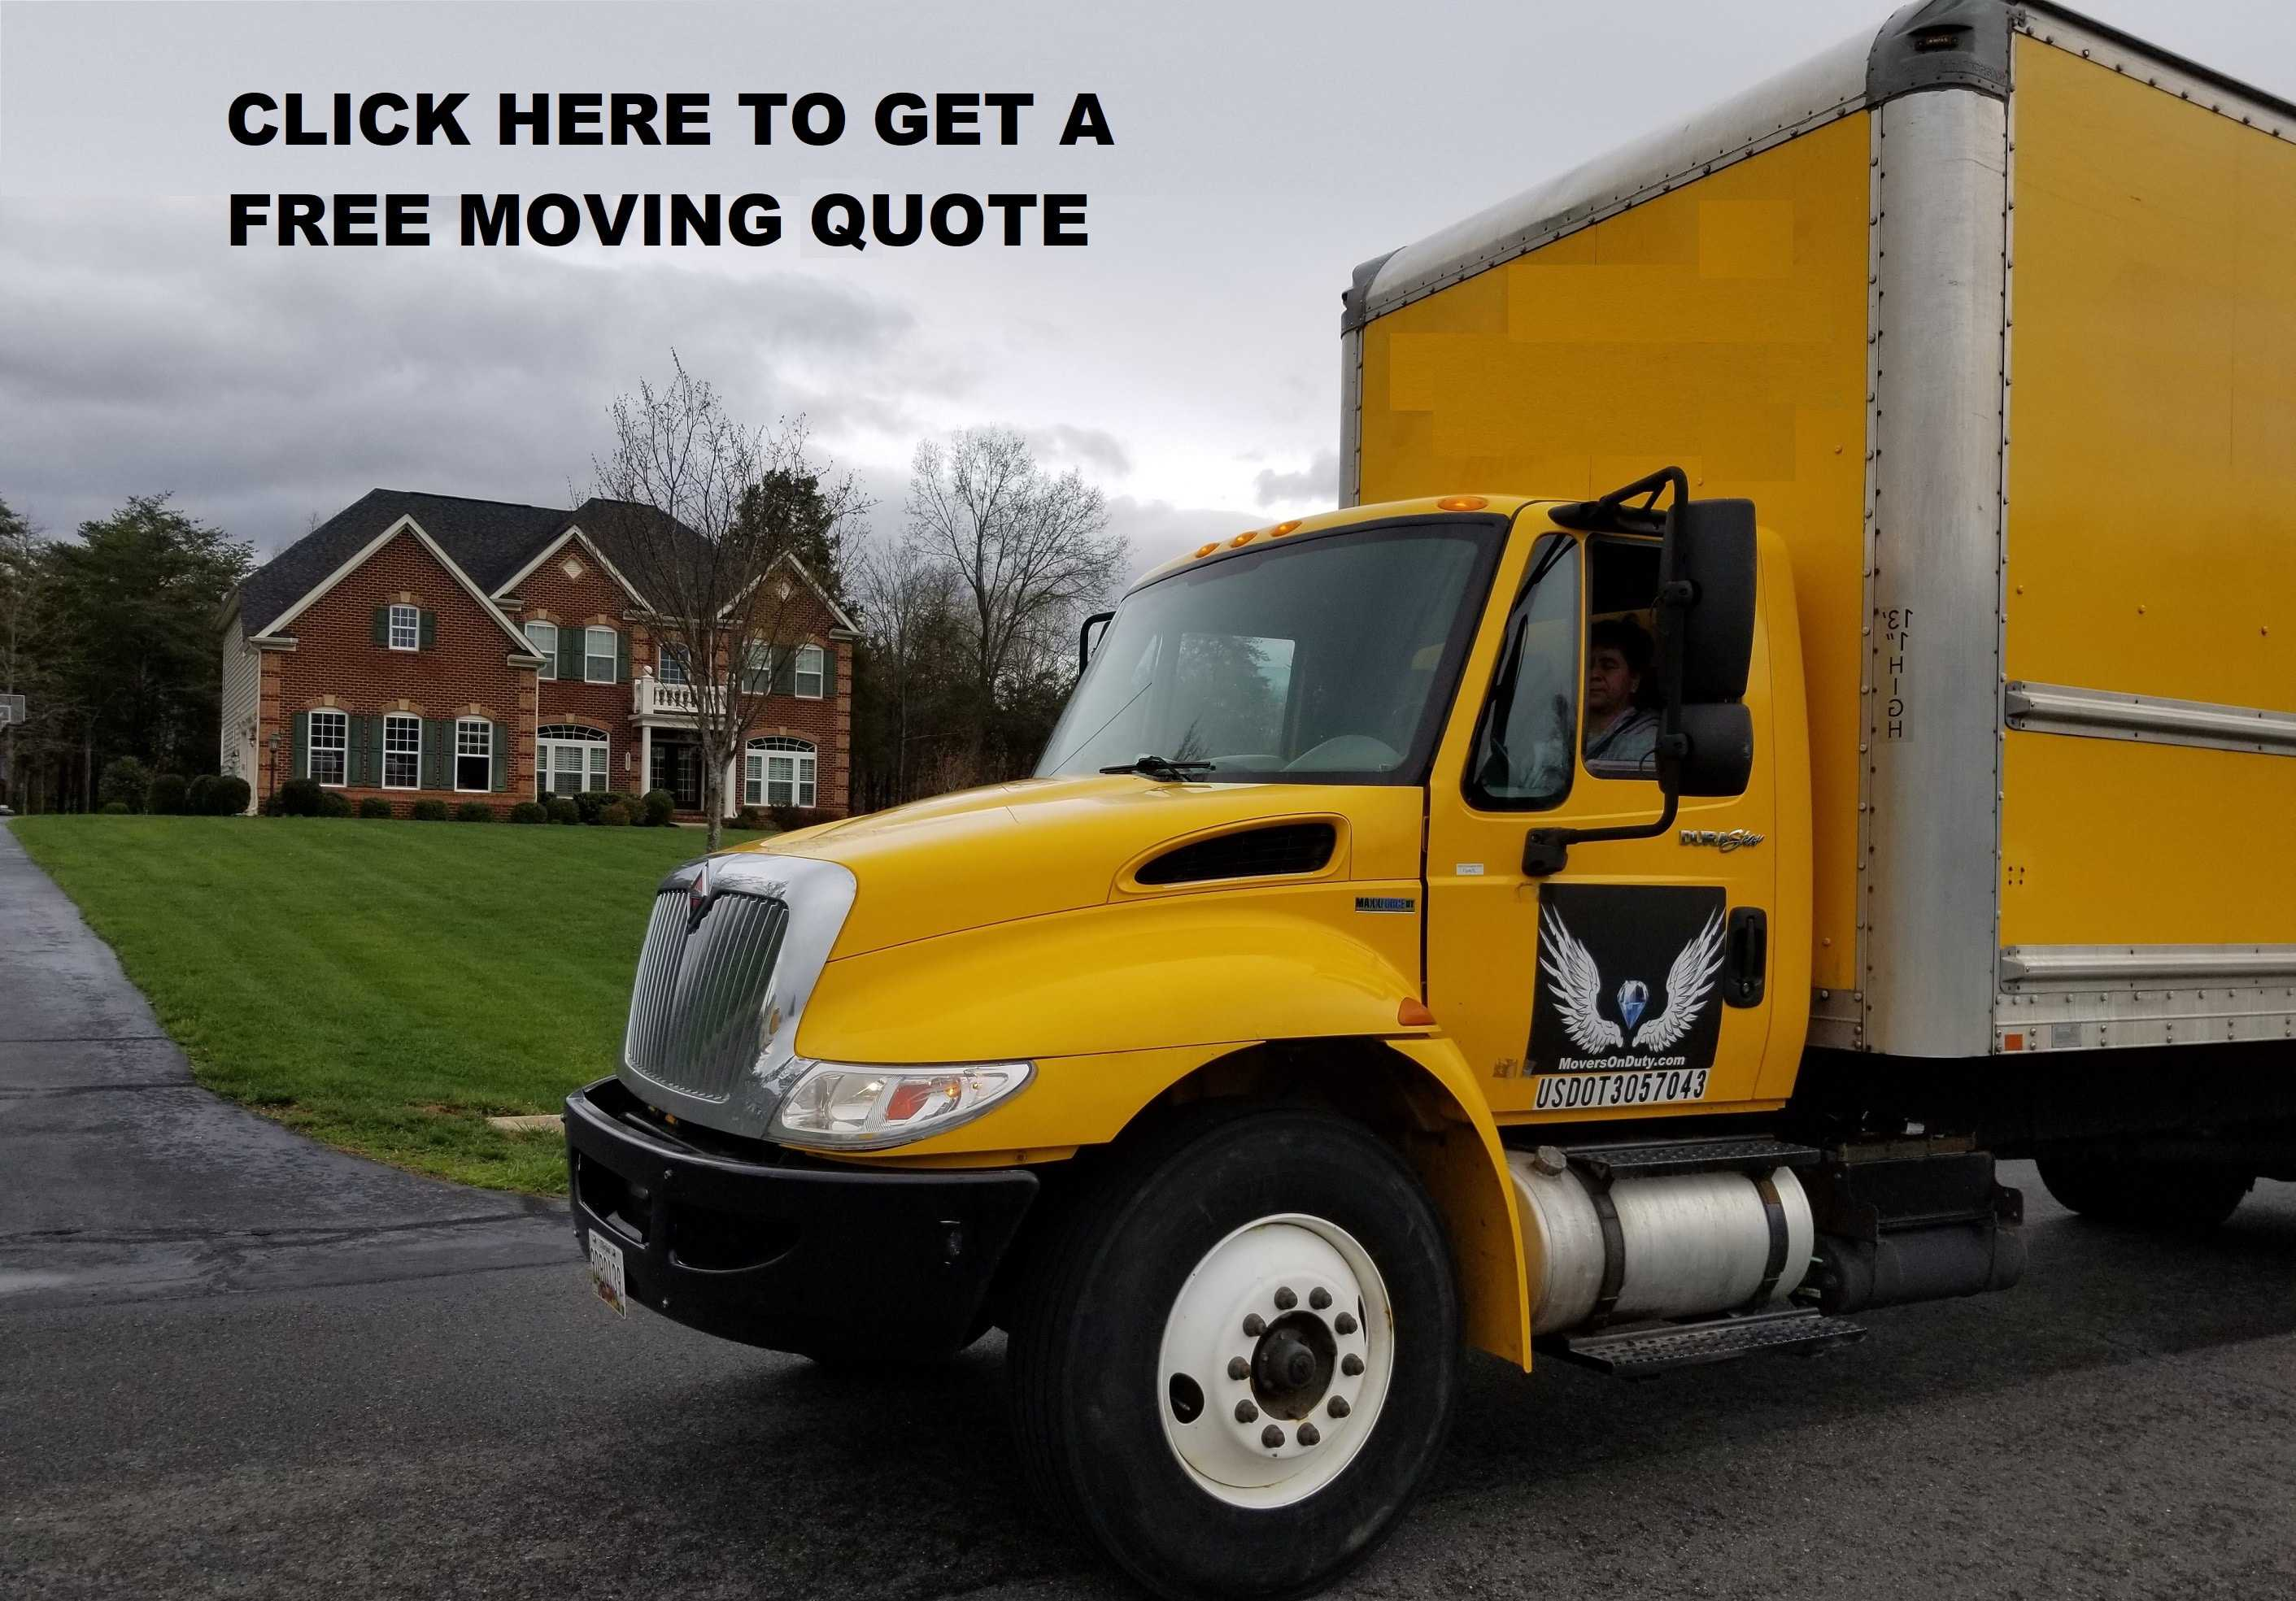 Should i hire moving brokers